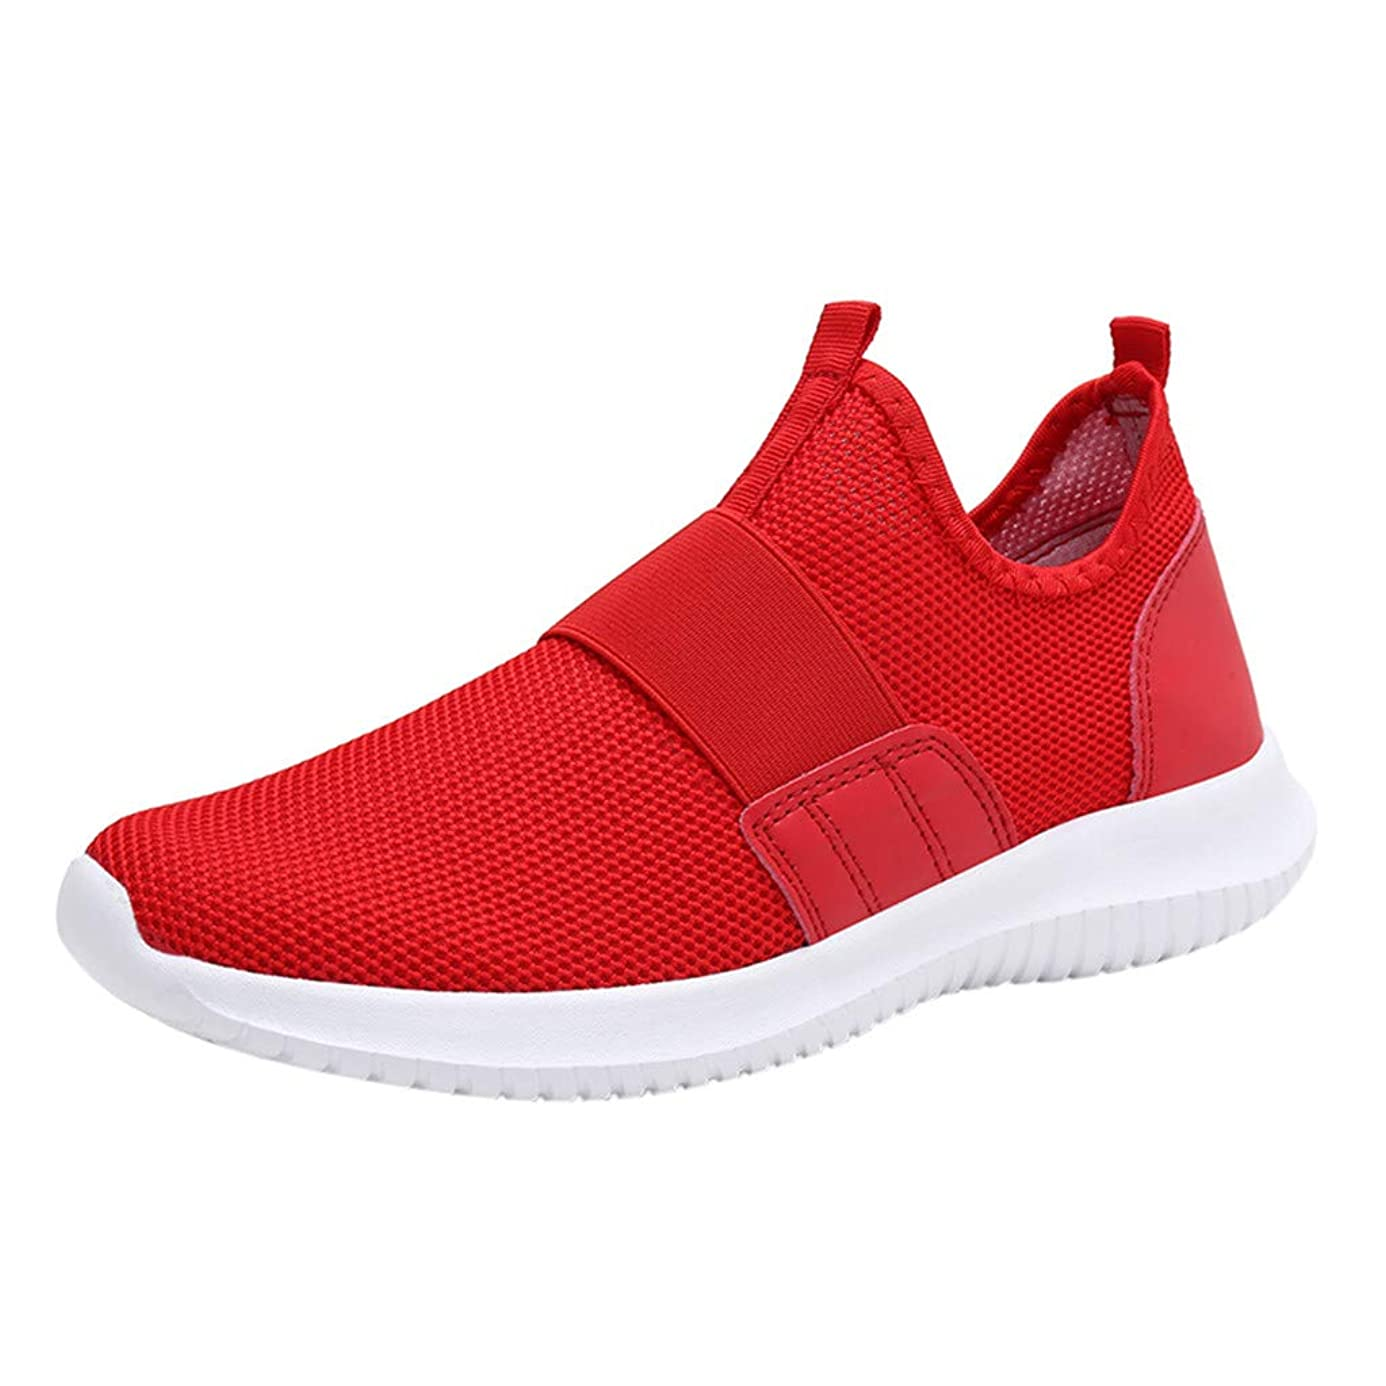 Men Breathable Running Shoes,Mosunx Athletic Boys Lightweight Sneakers Lazy Movement Shoes Without Shoelaces Fashion Casual Mesh Trail Walking Shoes Gym Movement Shoes (46, Red)